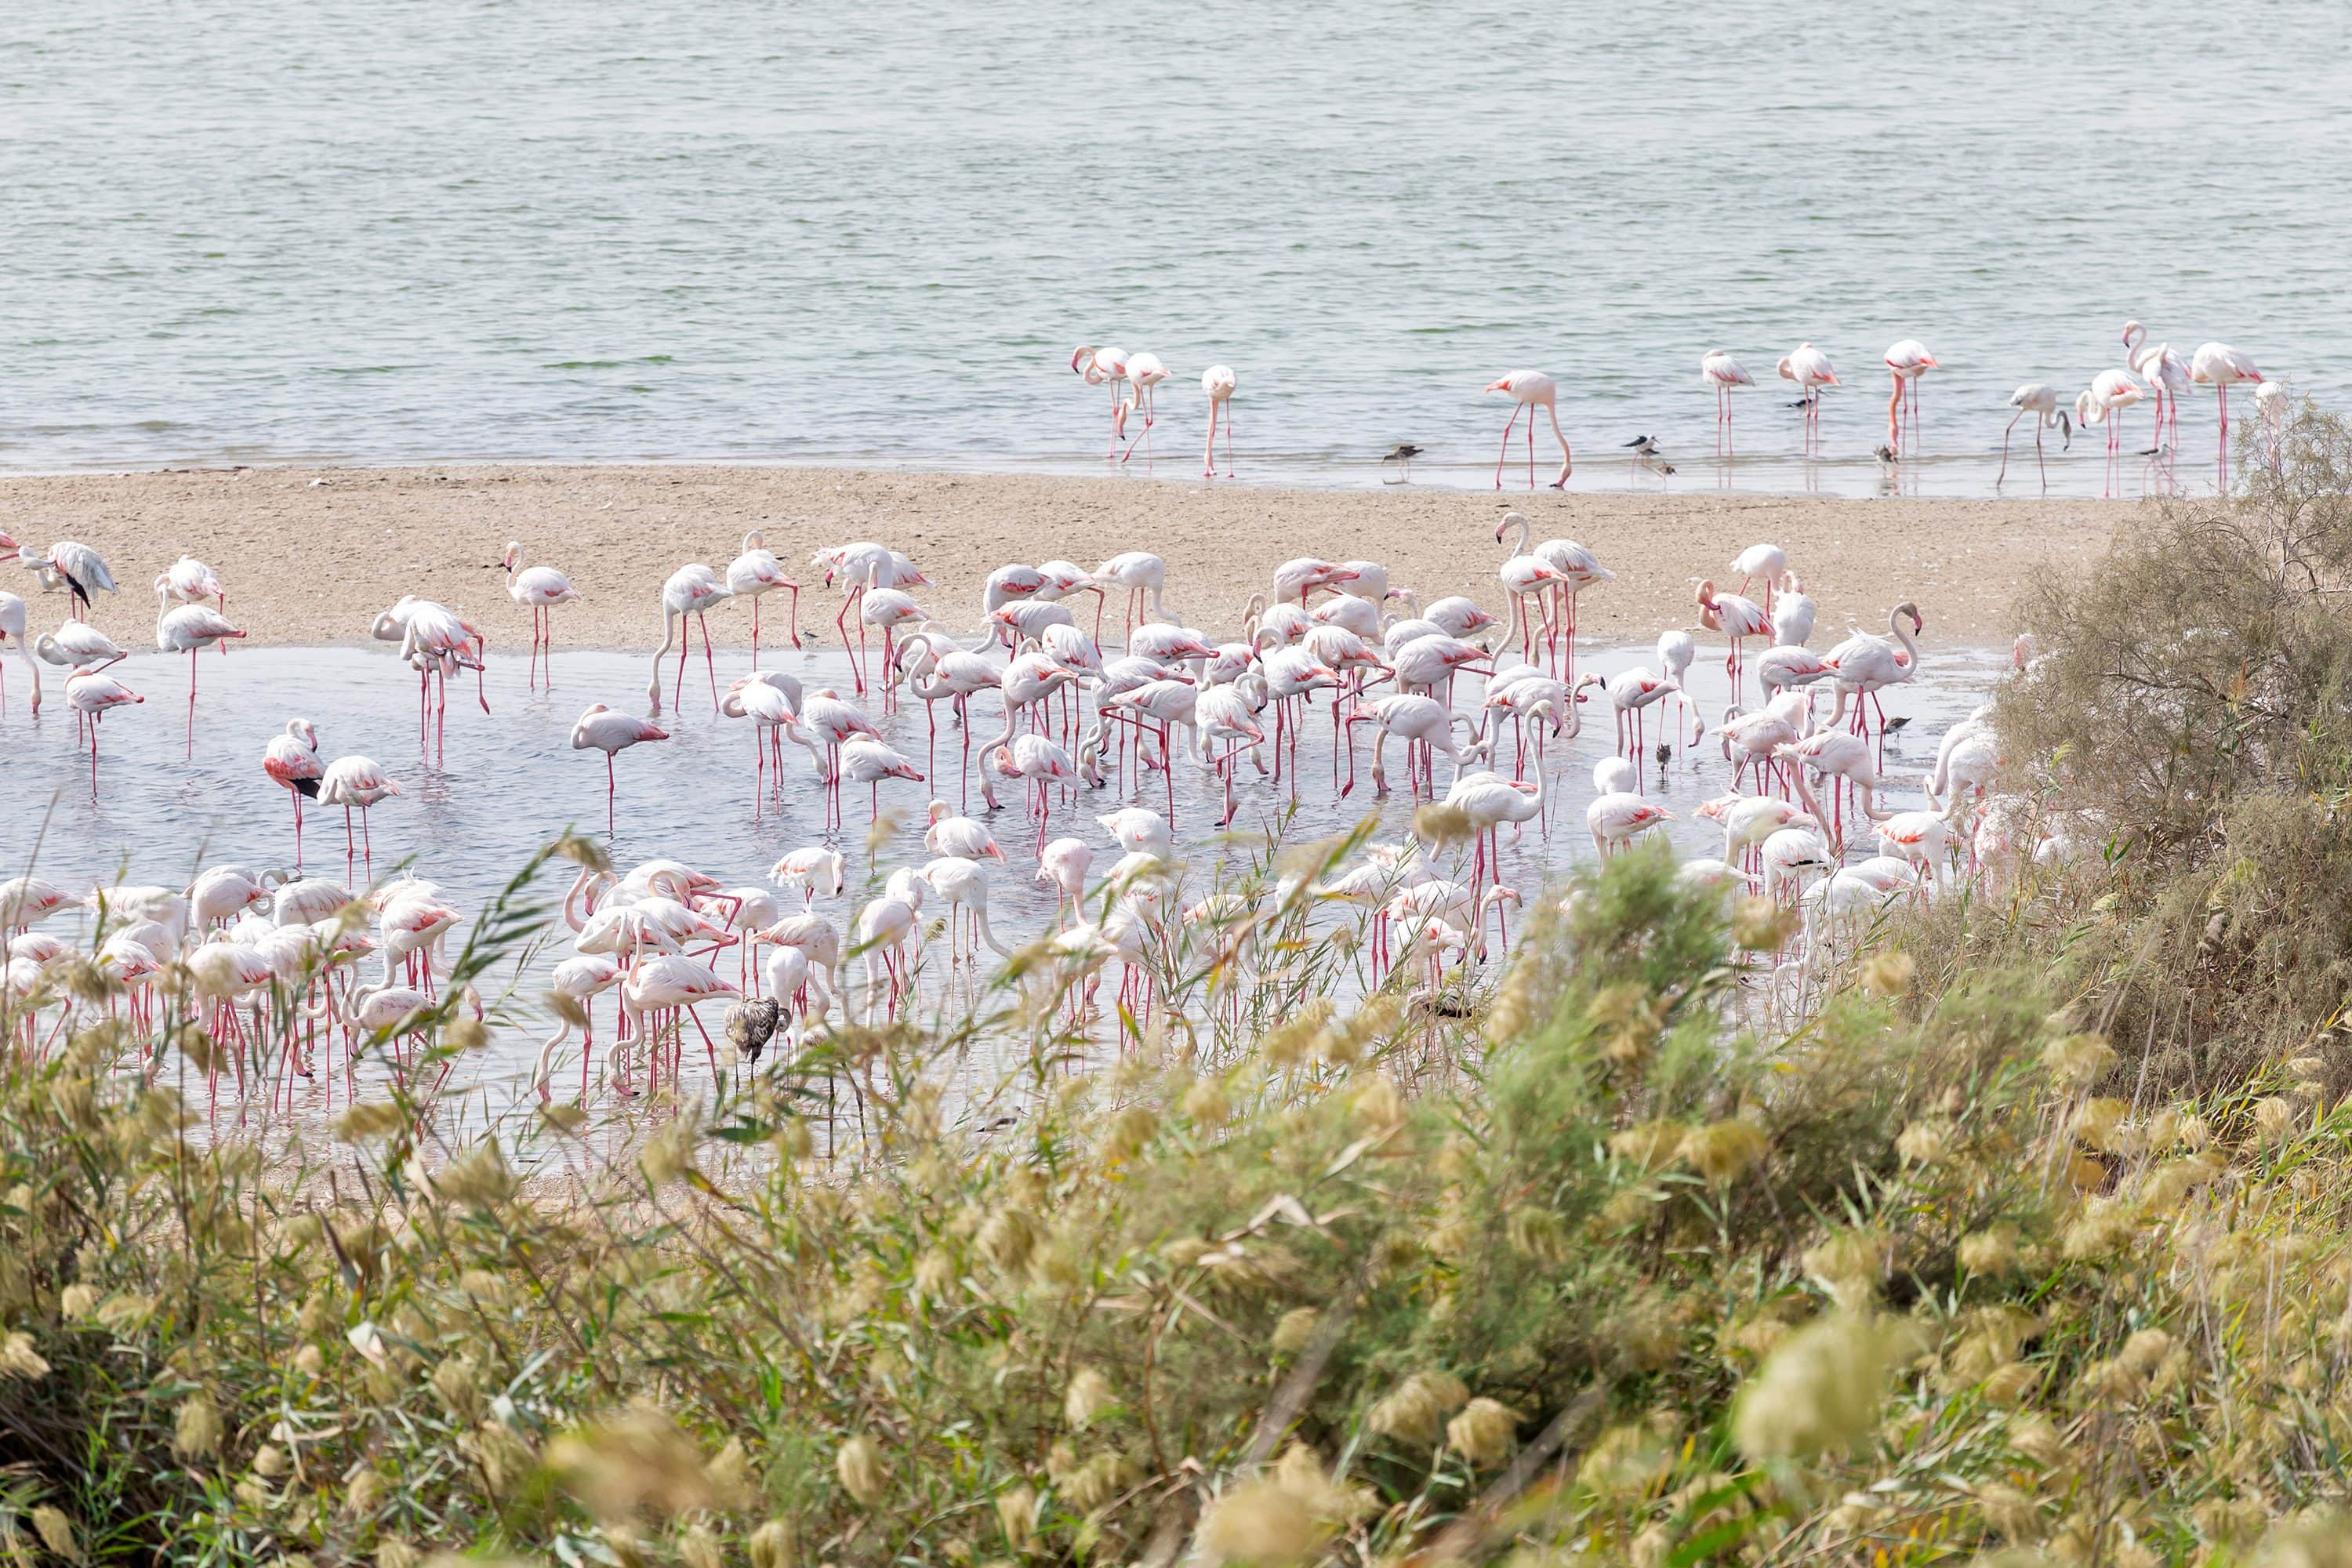 Flamingos on sand by water